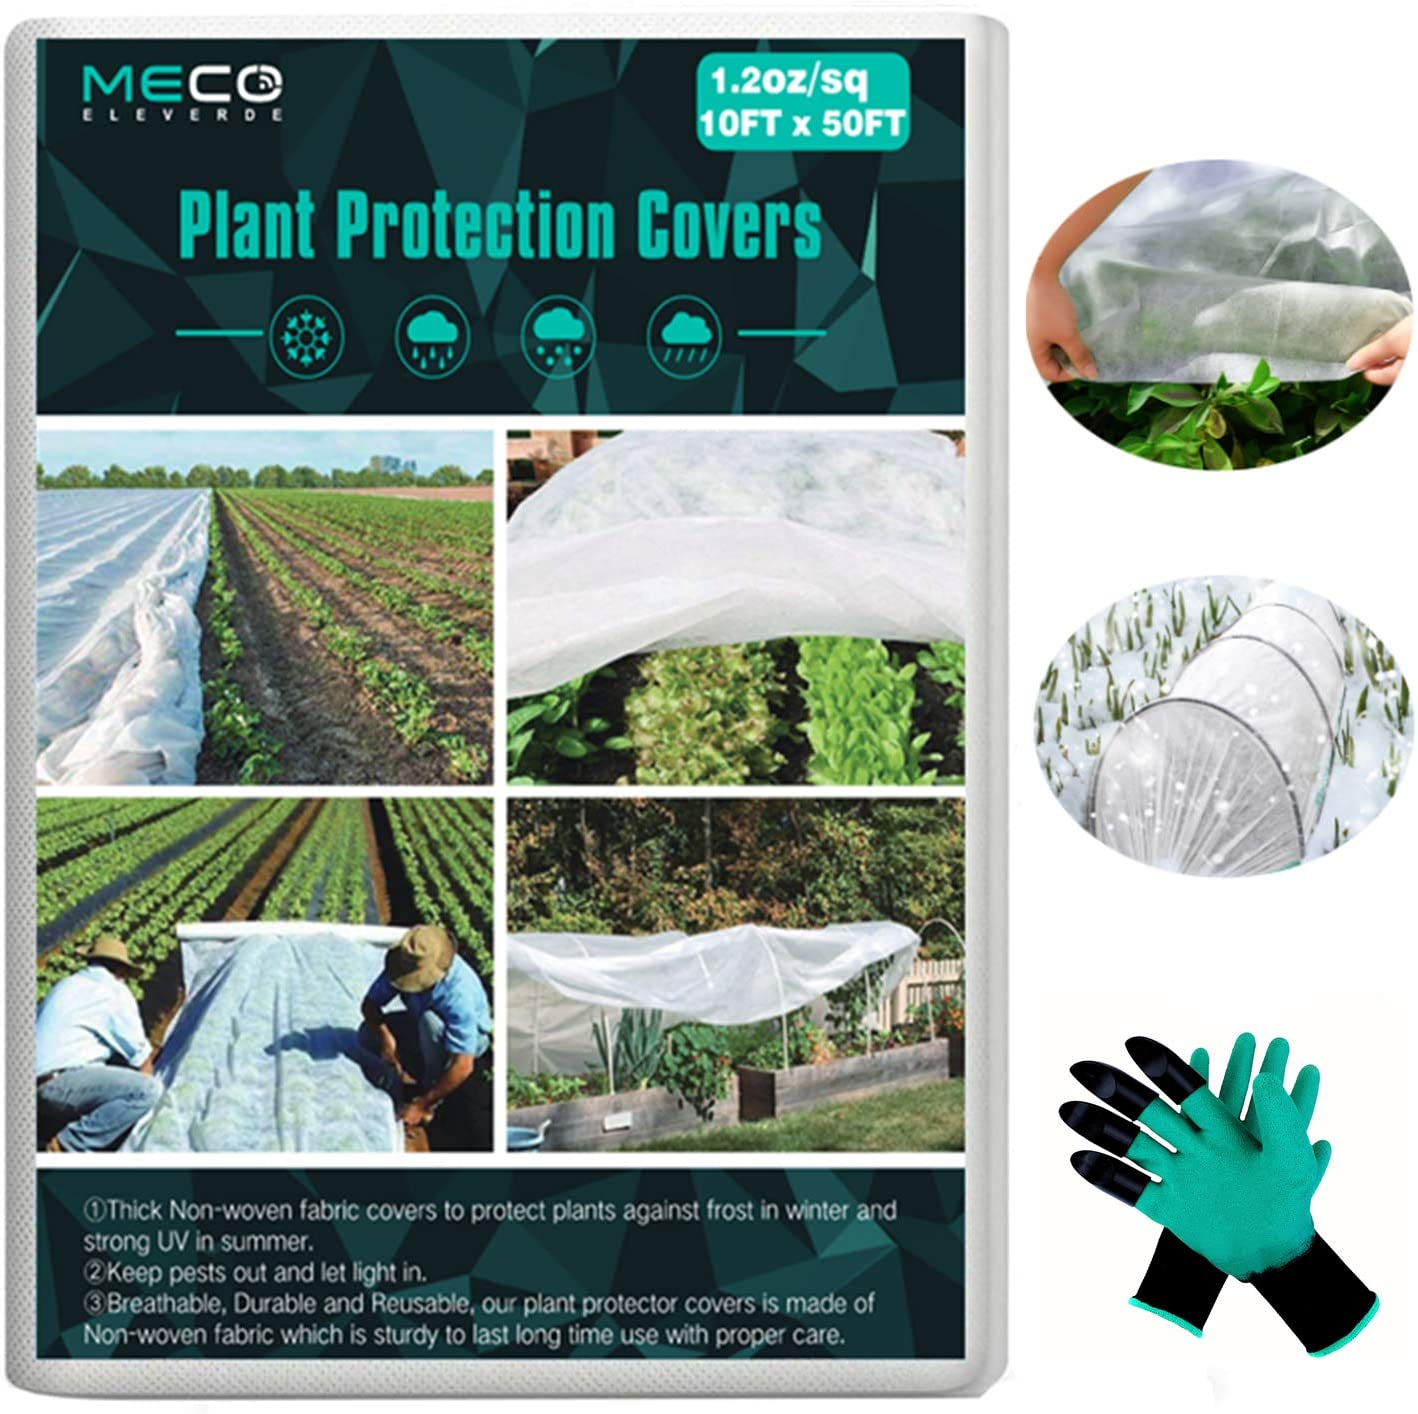 MECO Plant Covers with Garden Gloves, 10 ft x 50 ft Floating Row Cover Fabric Freeze Protection, Winter Frost Cover Anti-Freeze Jacket Warm Blanket for Season Extension, Frost Protection